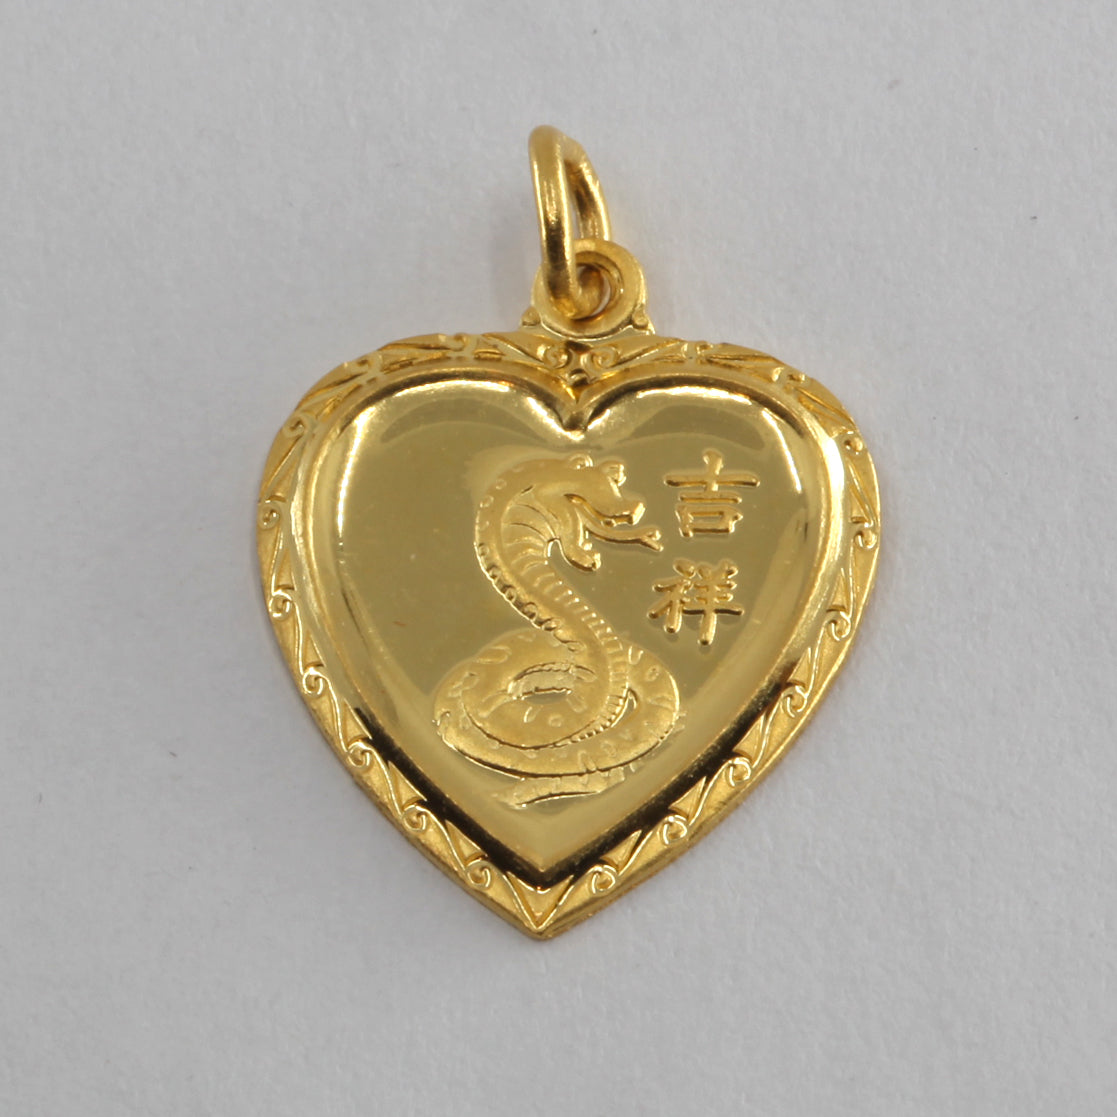 24K Solid Yellow Gold Heart Zodiac Snake Pendant 3.1 Grams